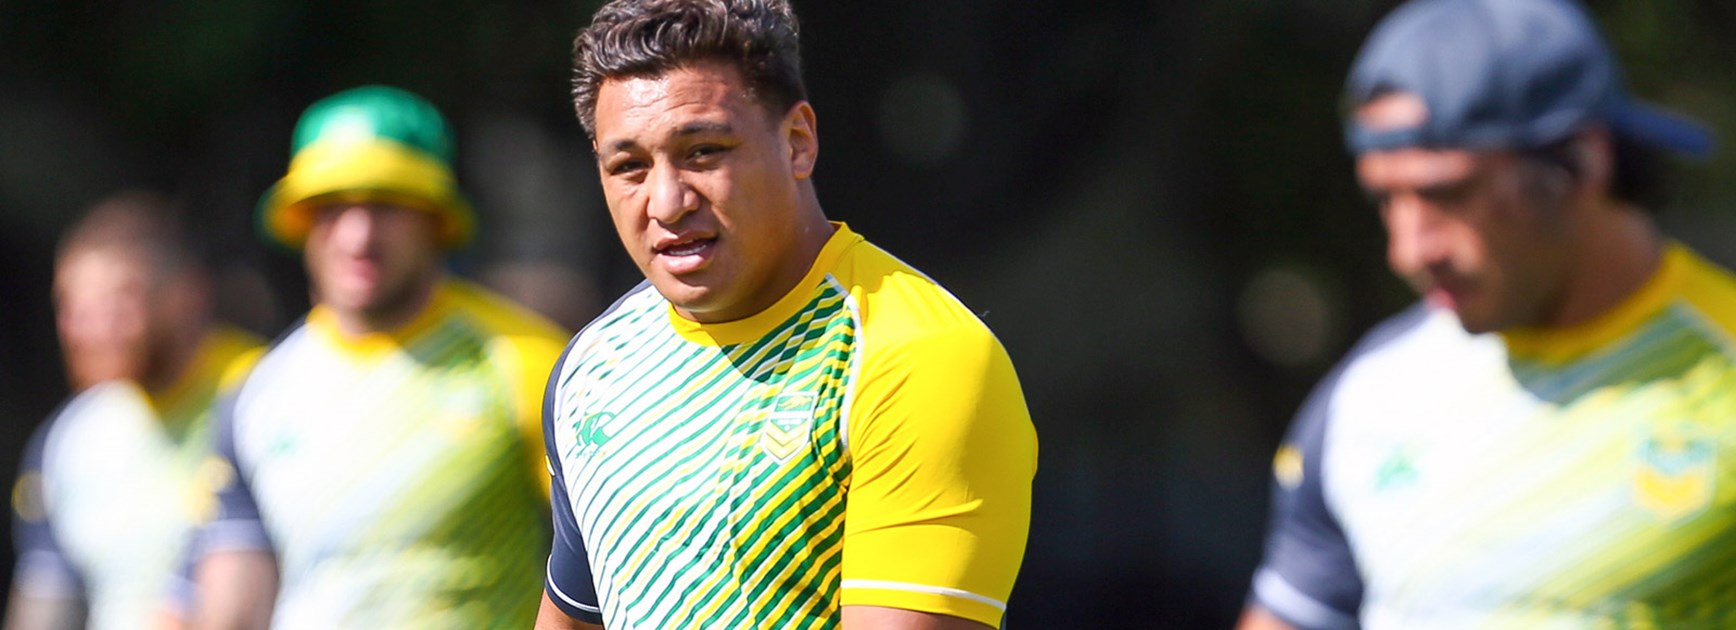 Josh Papalii in training with the Kangaroos ahead of the 2016 Downer Test Match.